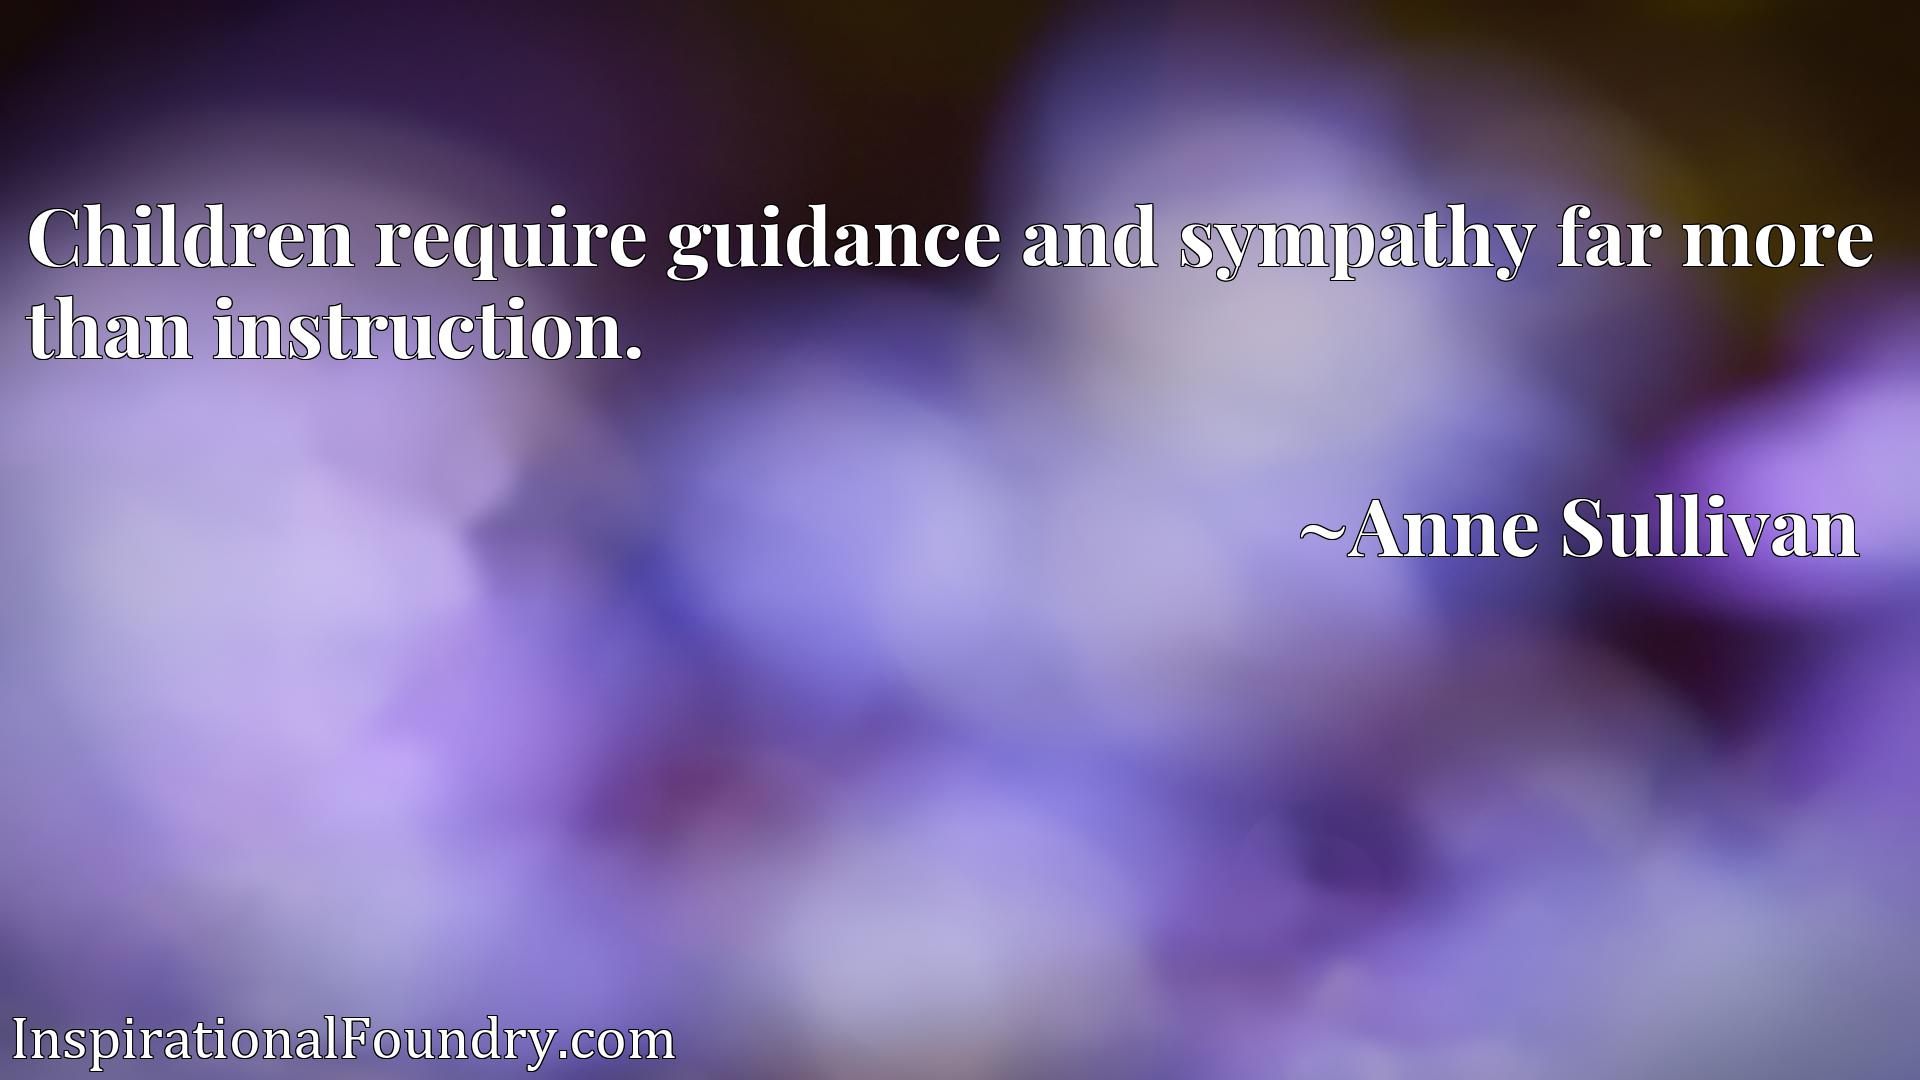 Children require guidance and sympathy far more than instruction.